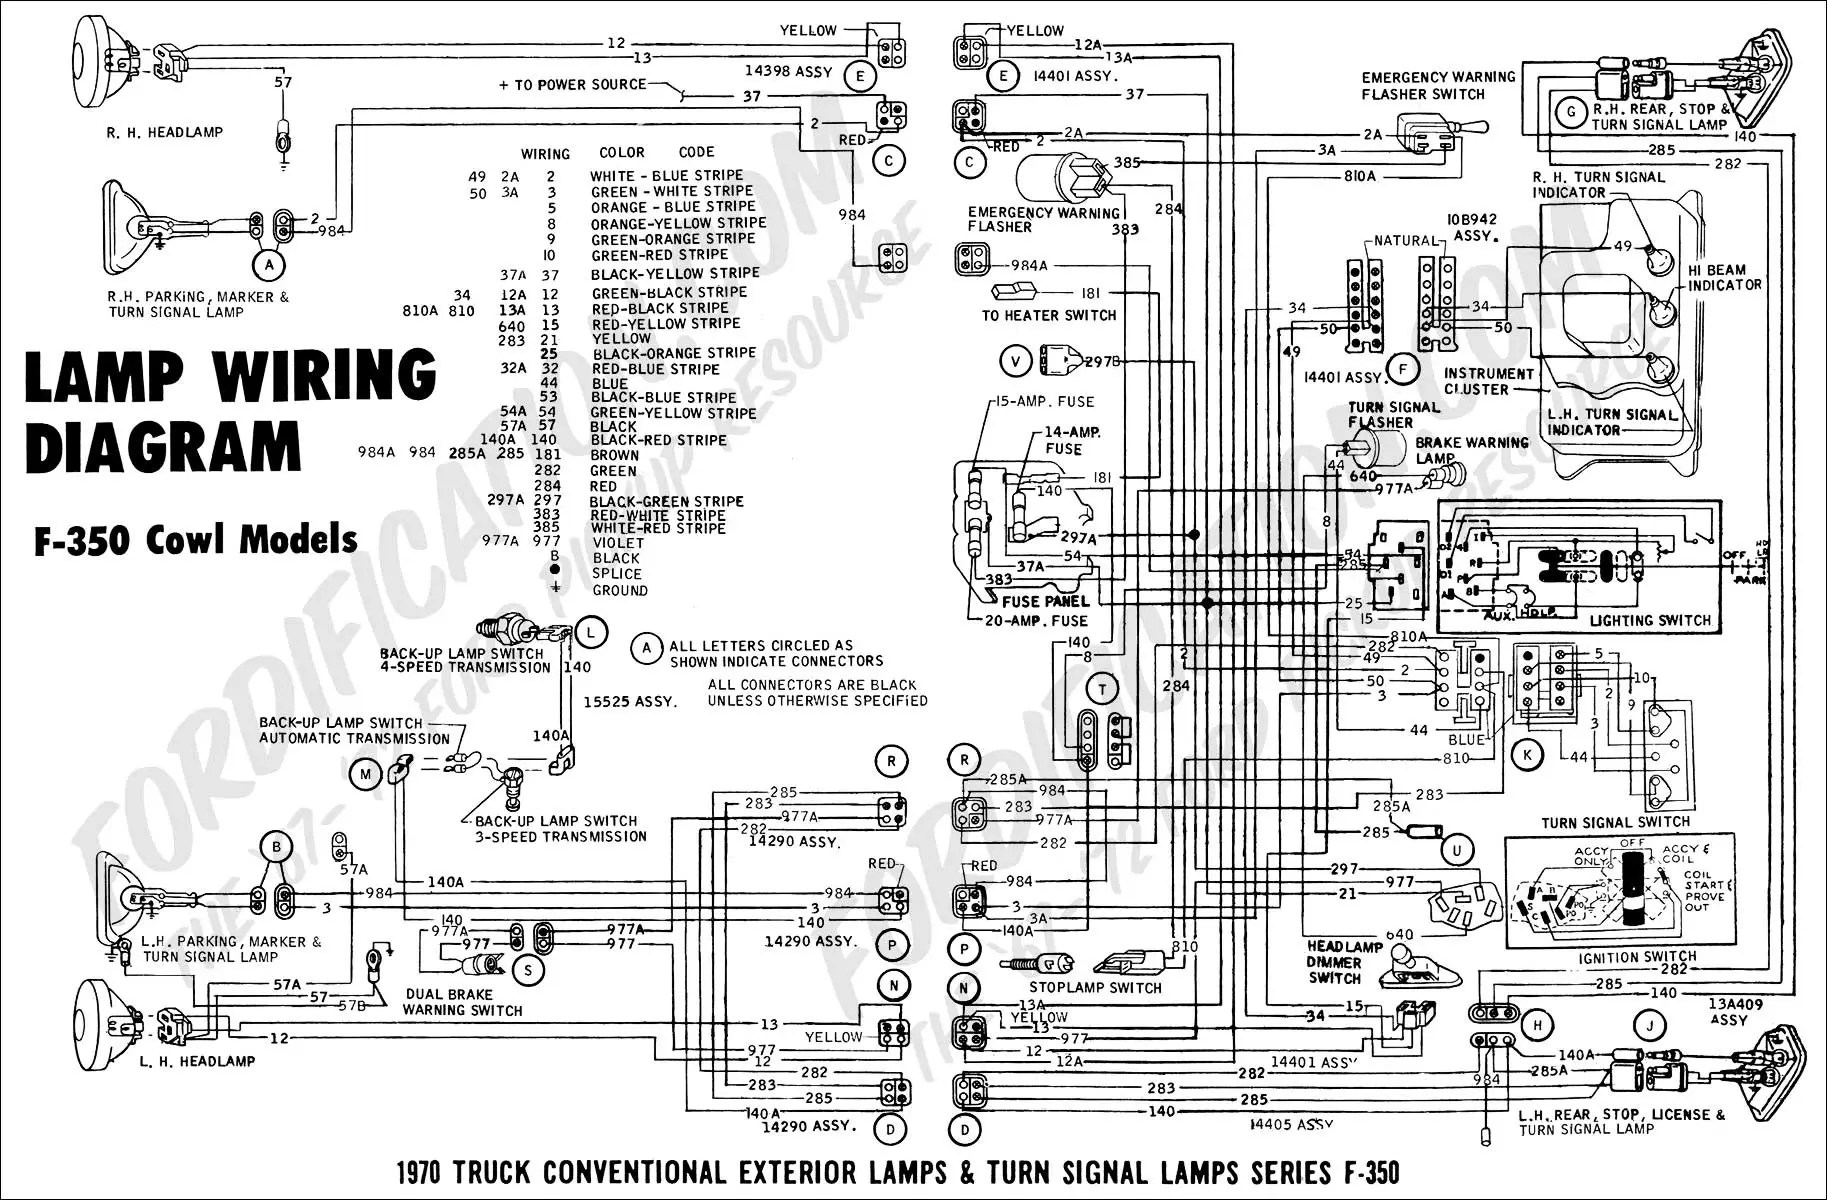 97 dakota wiring diagram abs